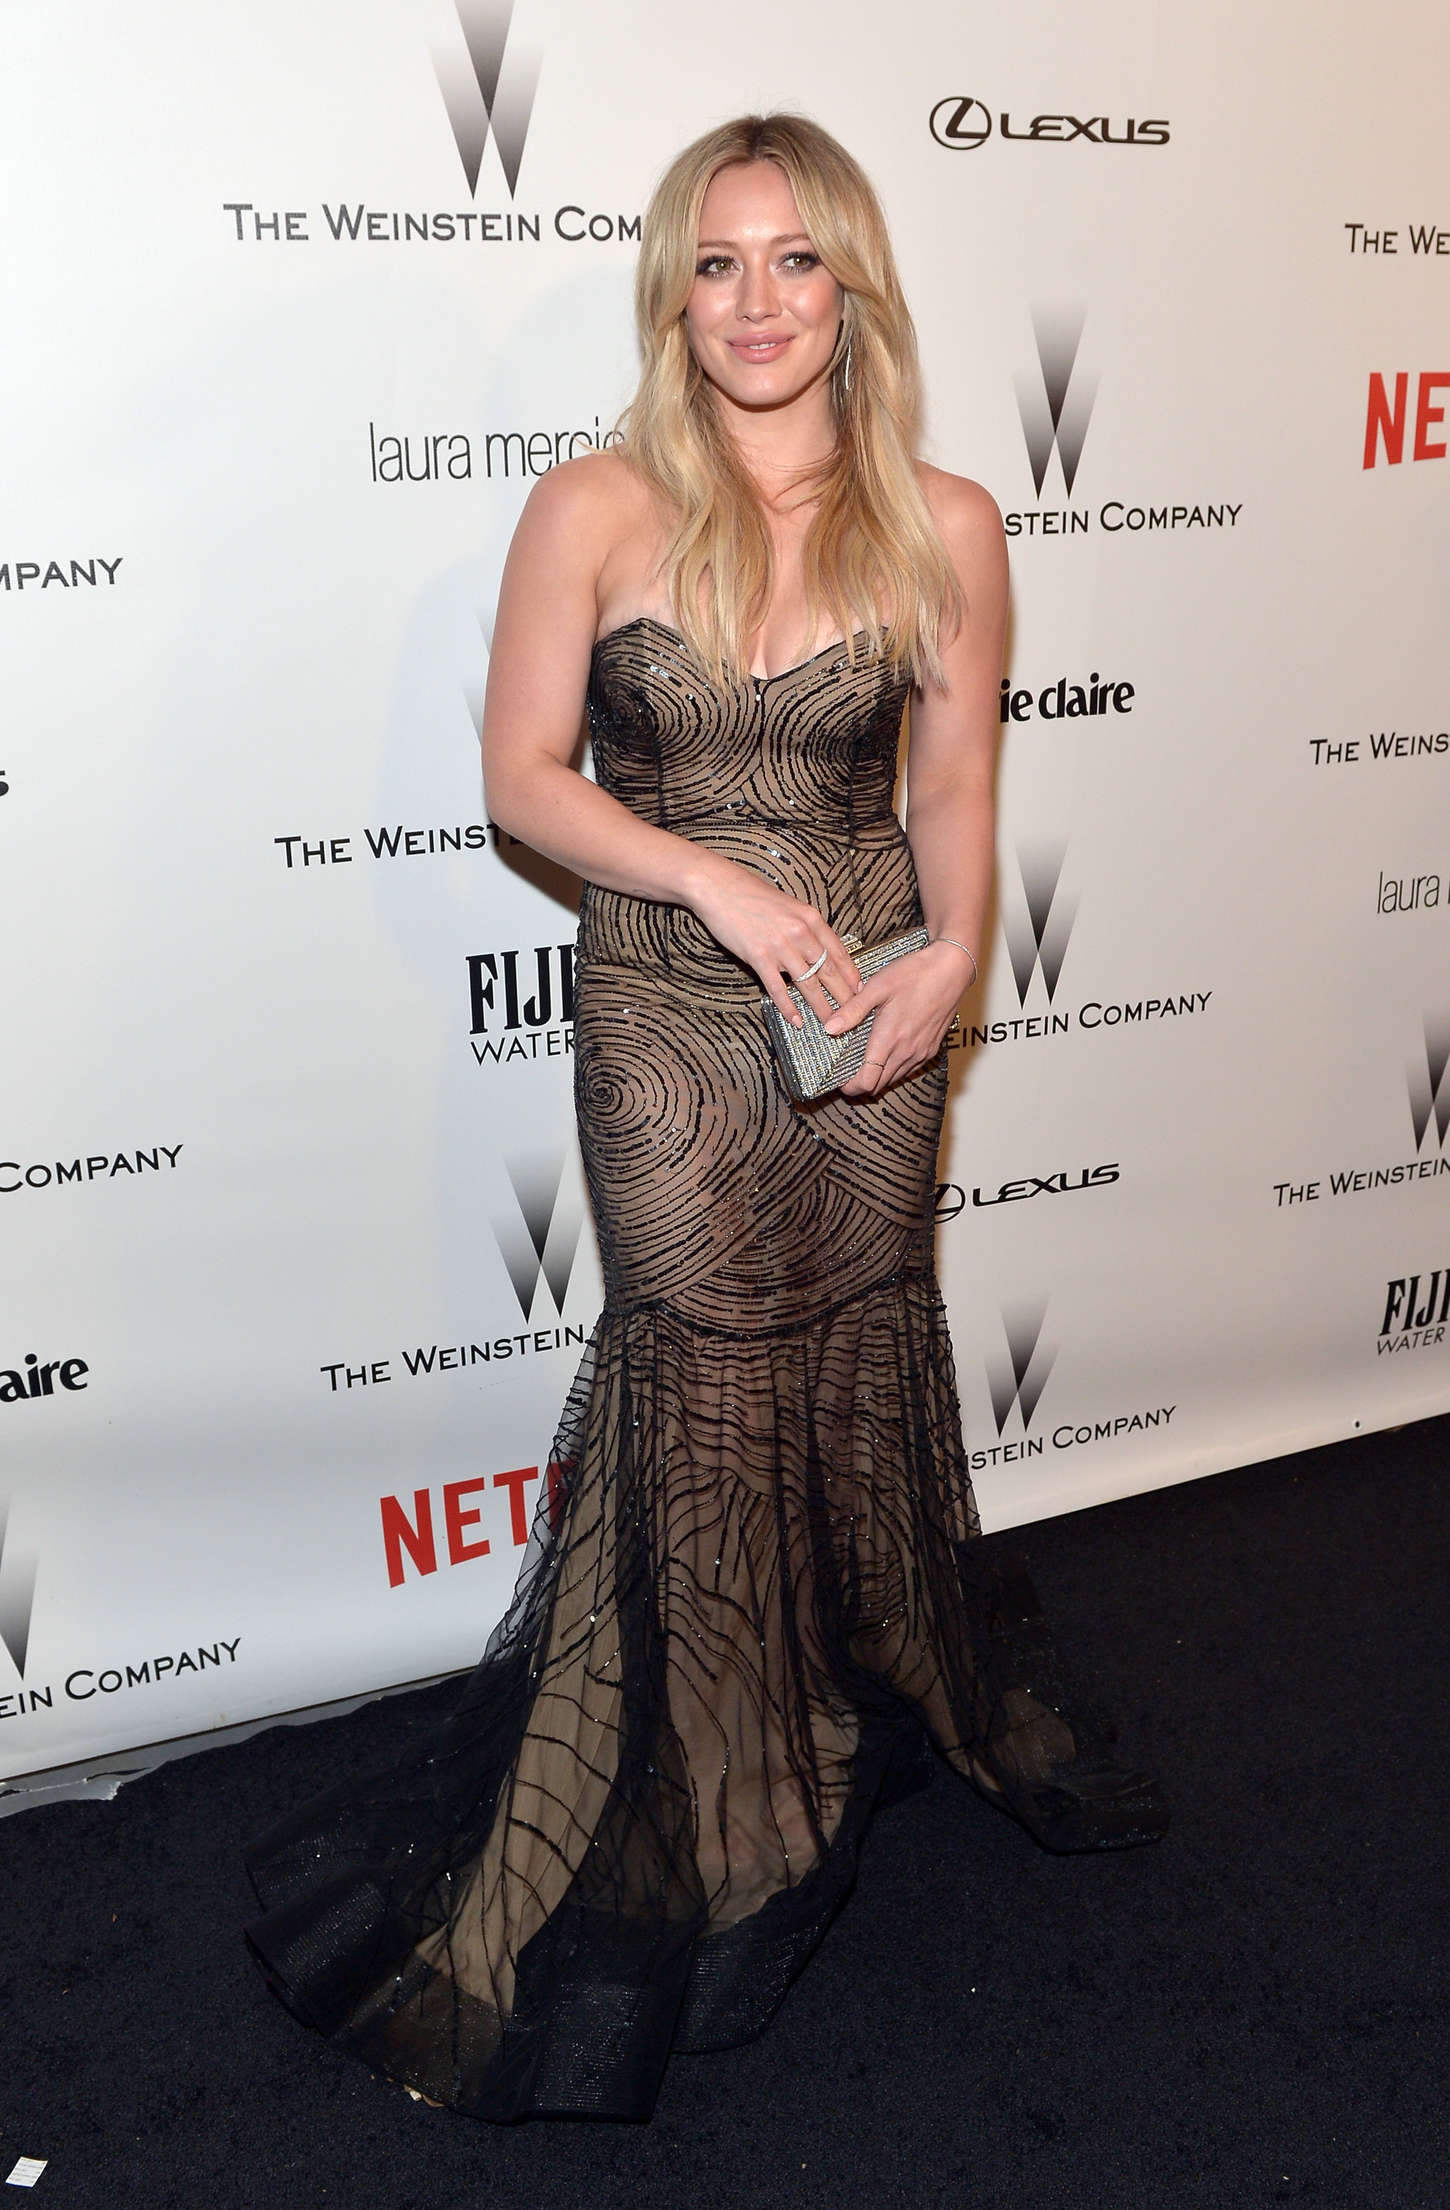 Hilary Duff 2015 : Hilary Duff: 2015 The Weinstein Company and Netflixs Golden Globes Party -04